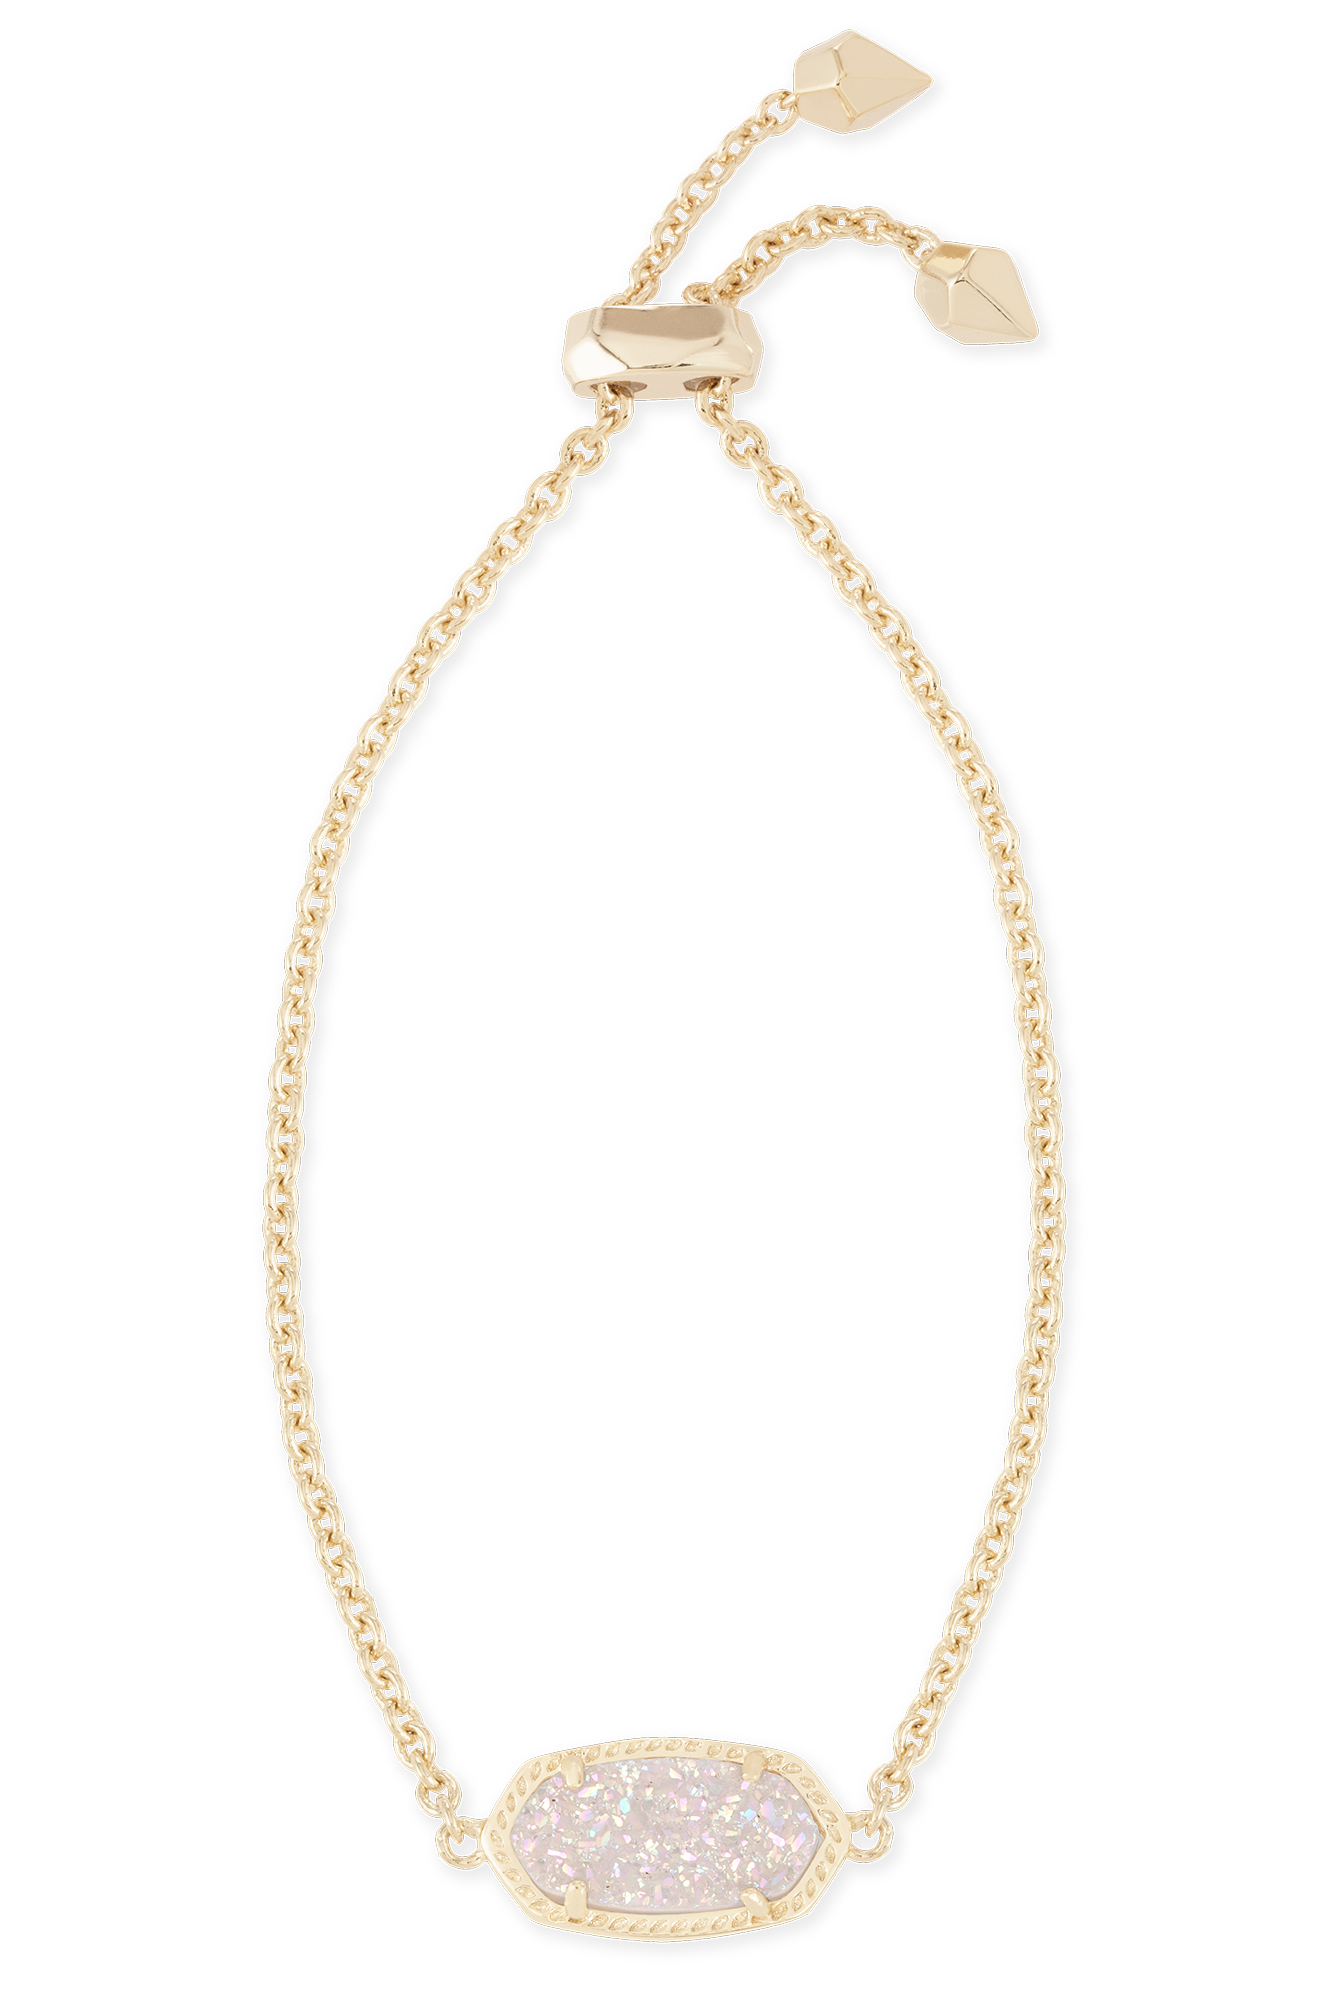 Kendra Scott Elaina Bracelet Gold with Iridescent Drusy